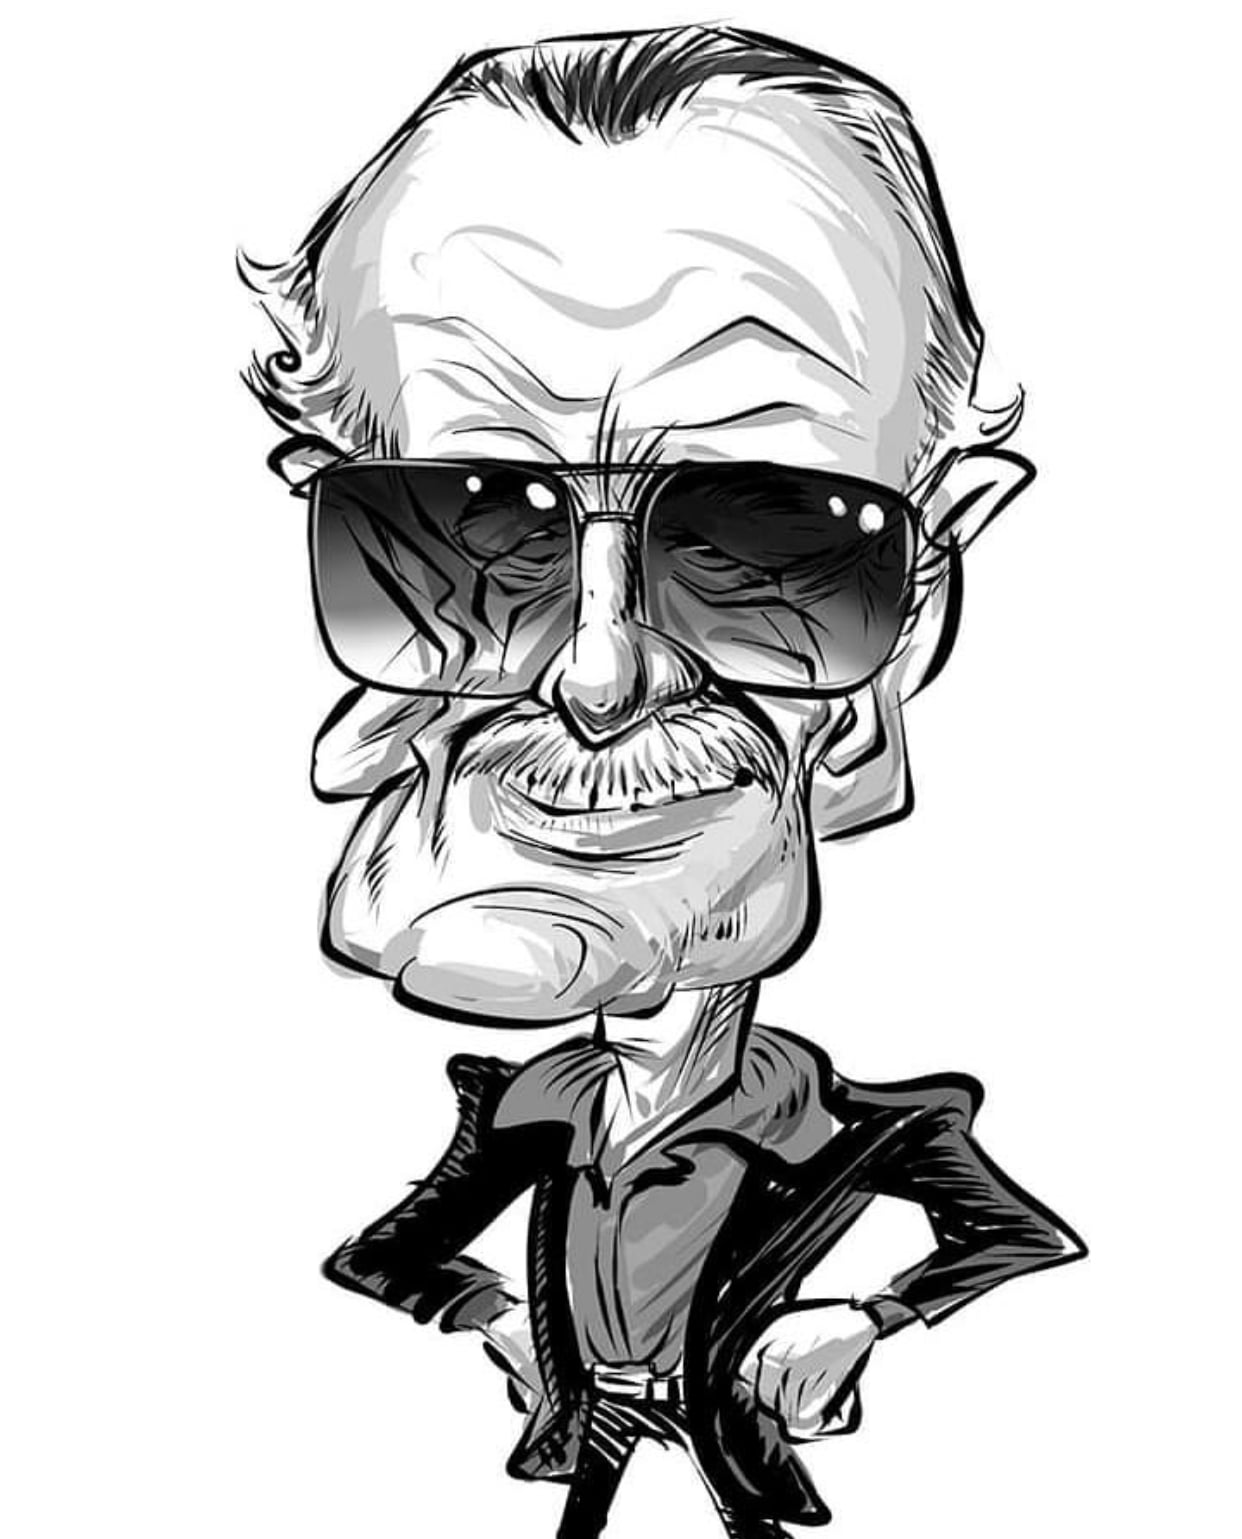 Black and White Stan Lee, Caricature by William Jeovah de Medeiros, from Brazil